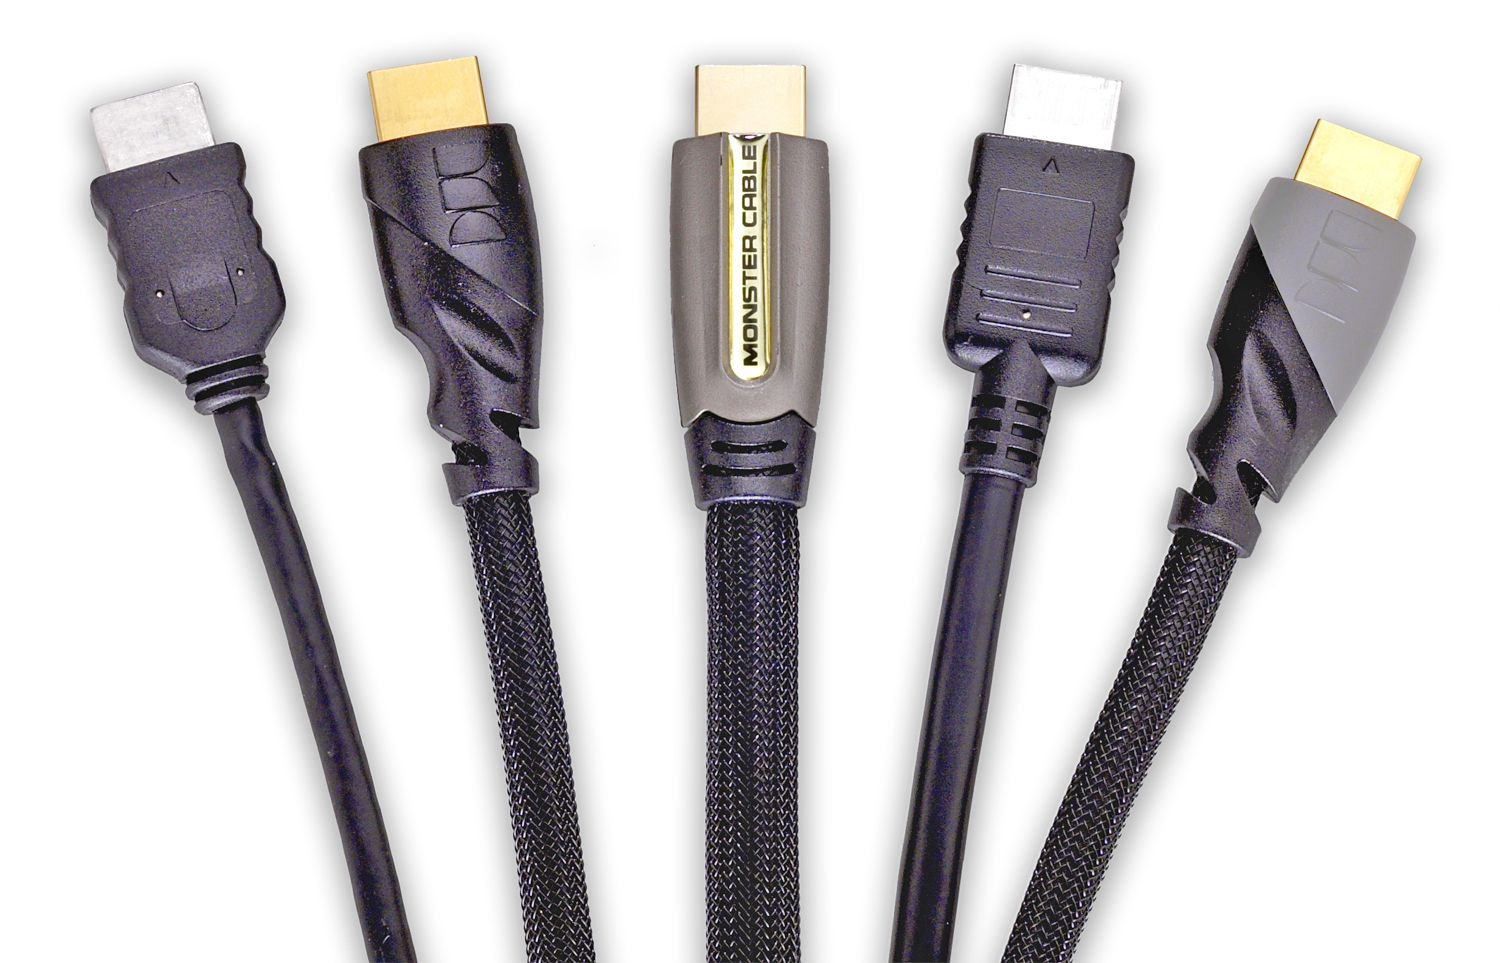 Are all HDMI cables the same